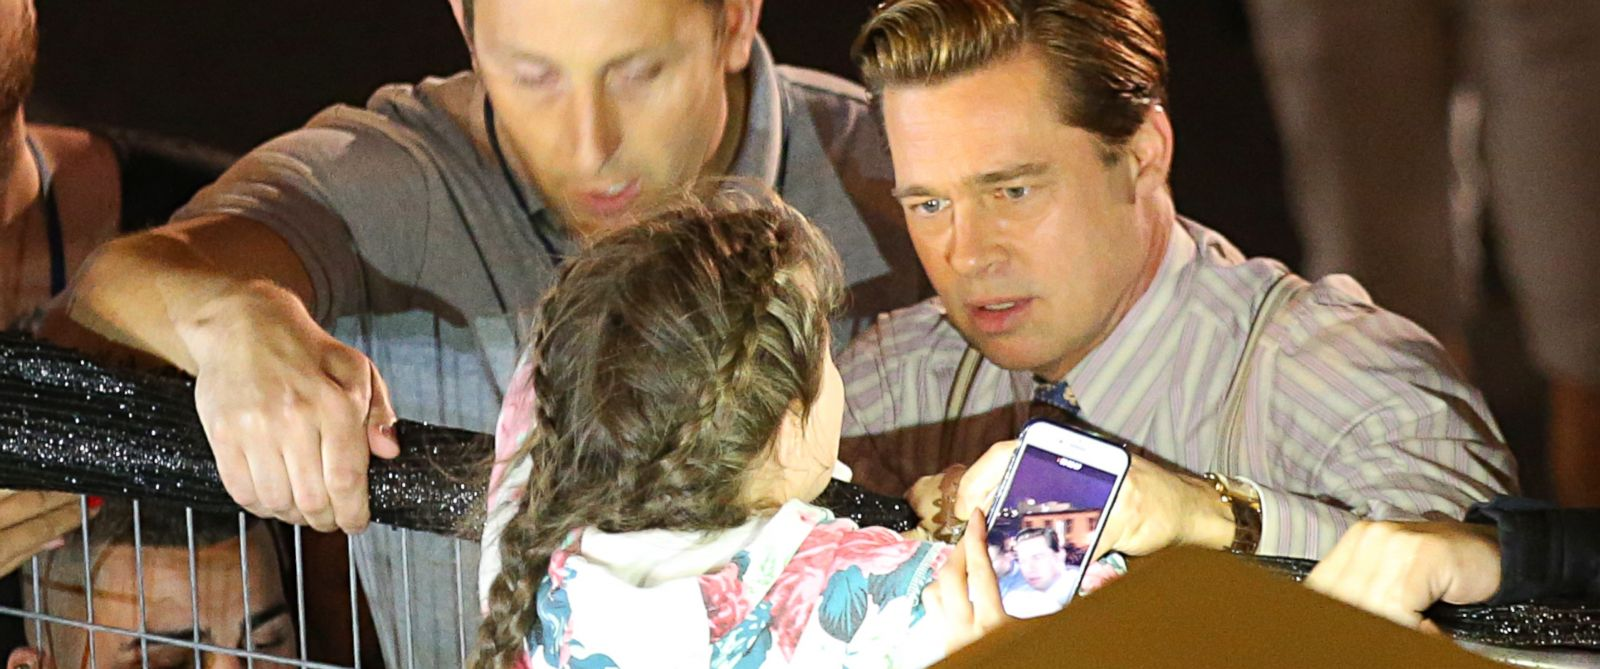 PHOTO: While filming scenes for the upcoming film Allied, Brad Pitt came to the rescue of a young girl who was in danger of getting crushed by the crowd waiting to see him on May 22, 2016.